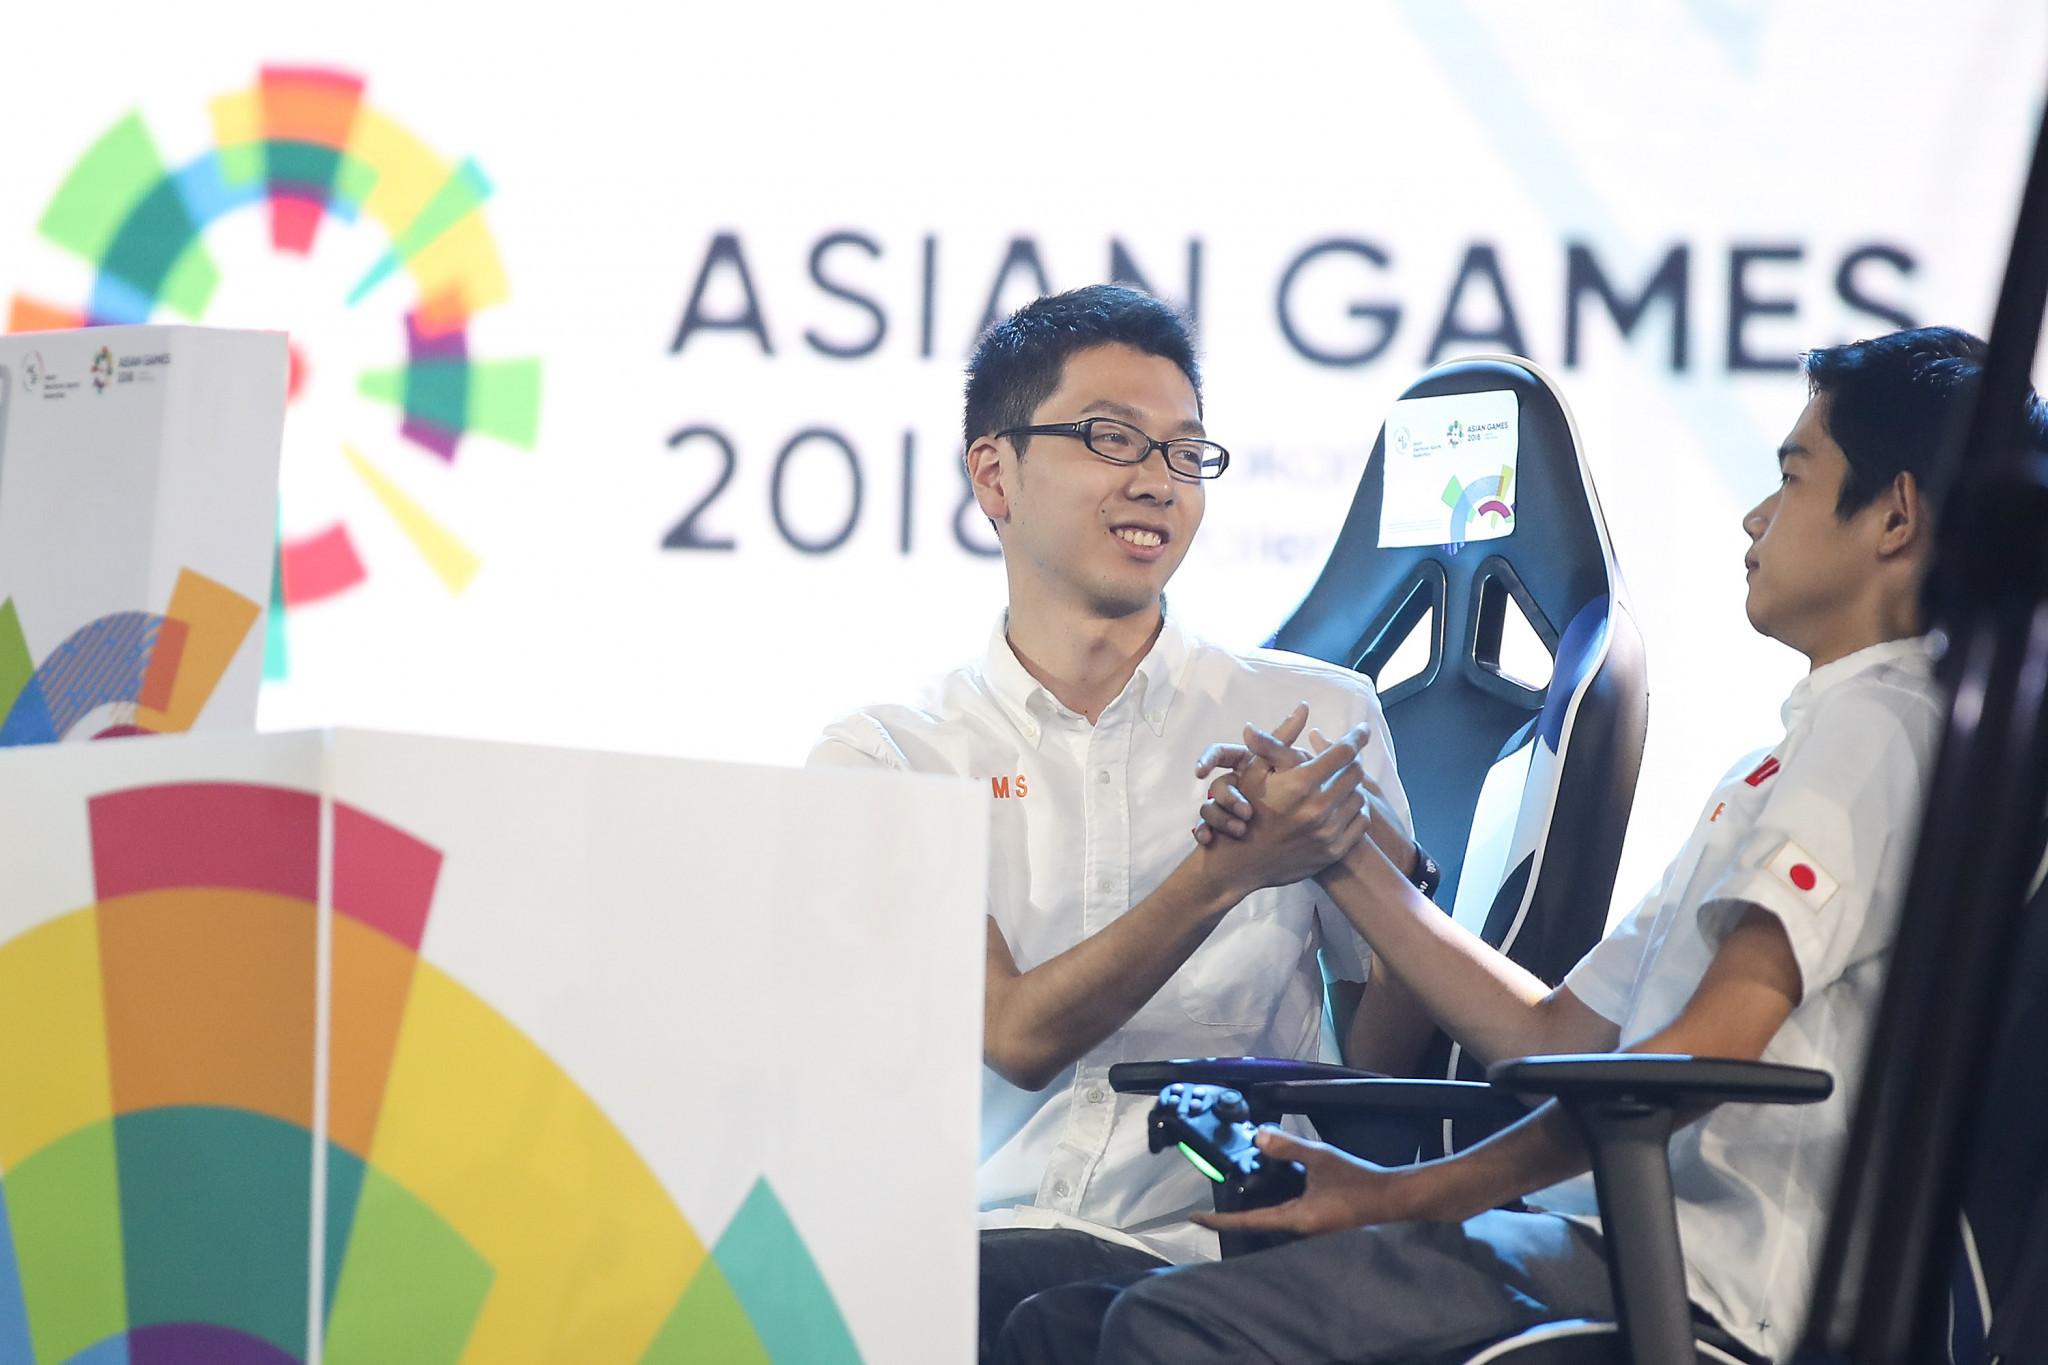 Esports featured as a demonstration event at the Jakarta Palembang 2018 Asian Games ©Getty Images